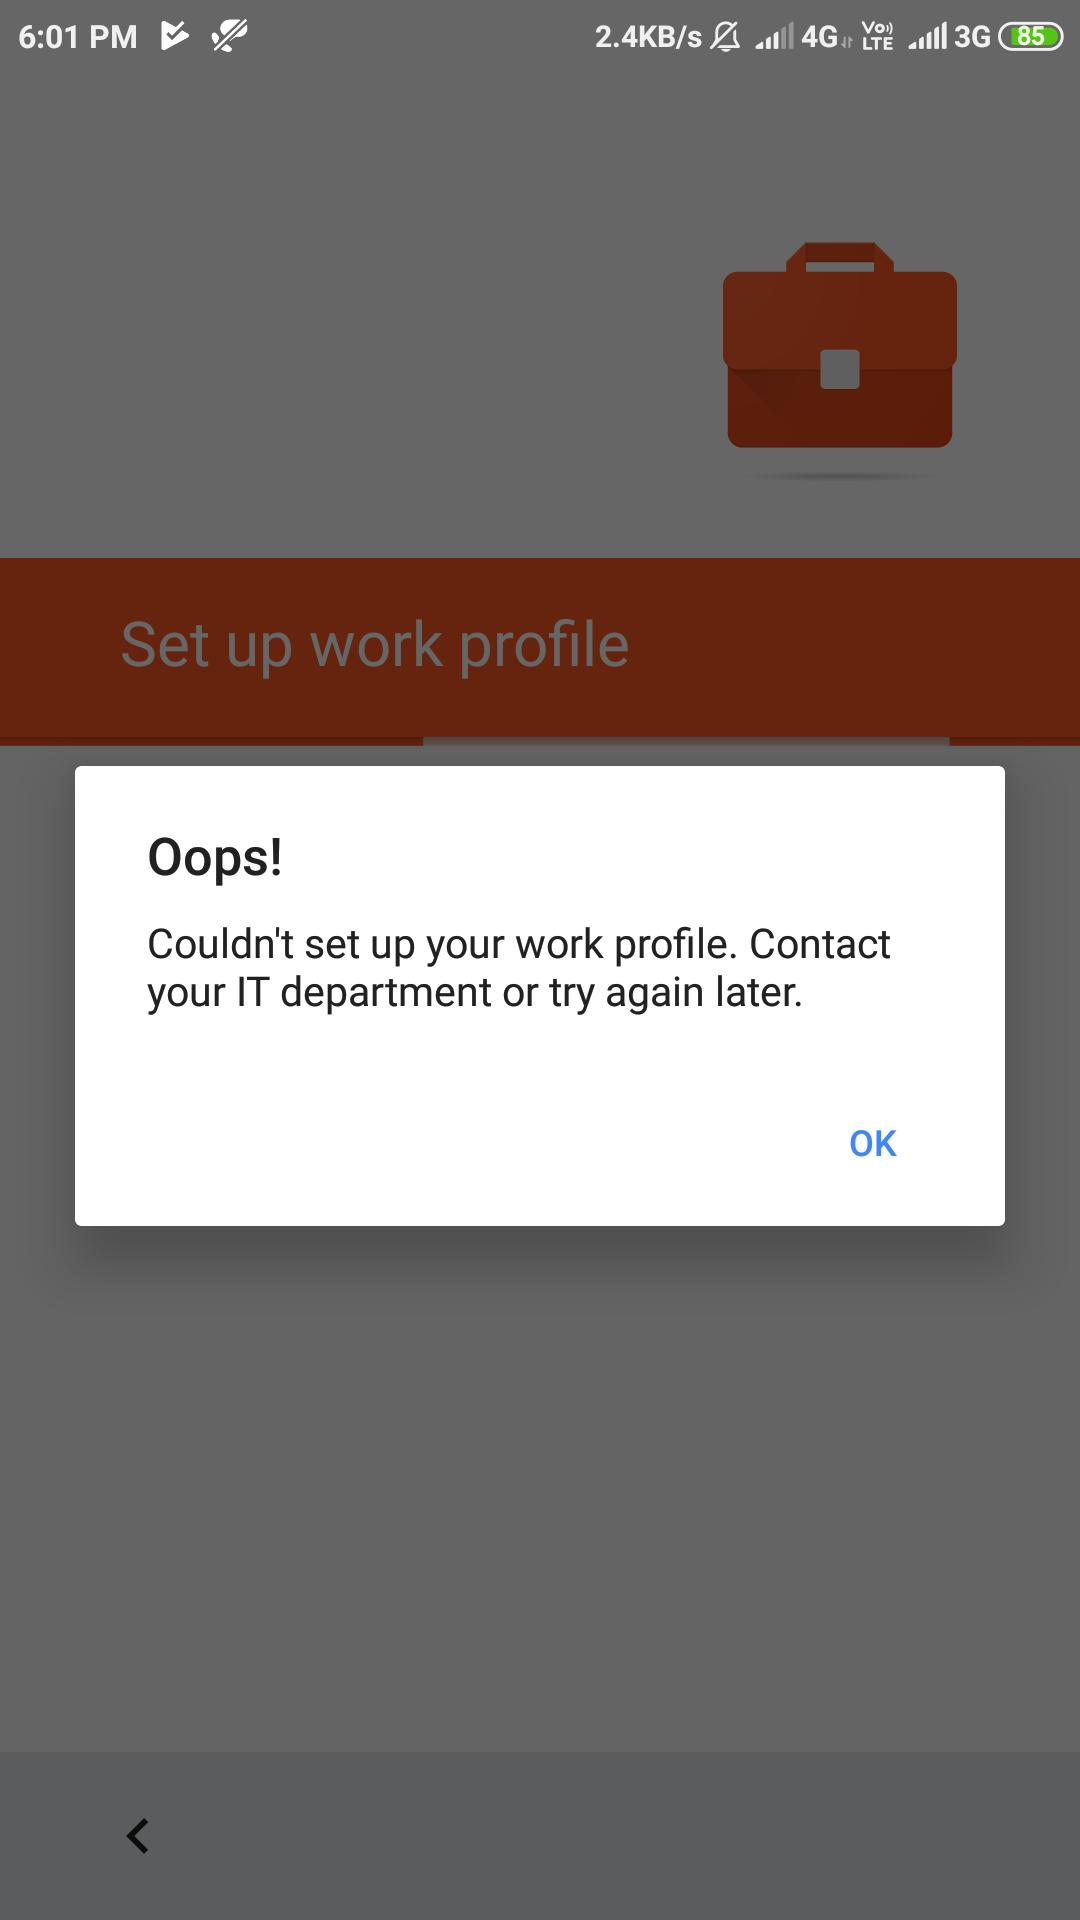 Error message while setting up work profile on the device.